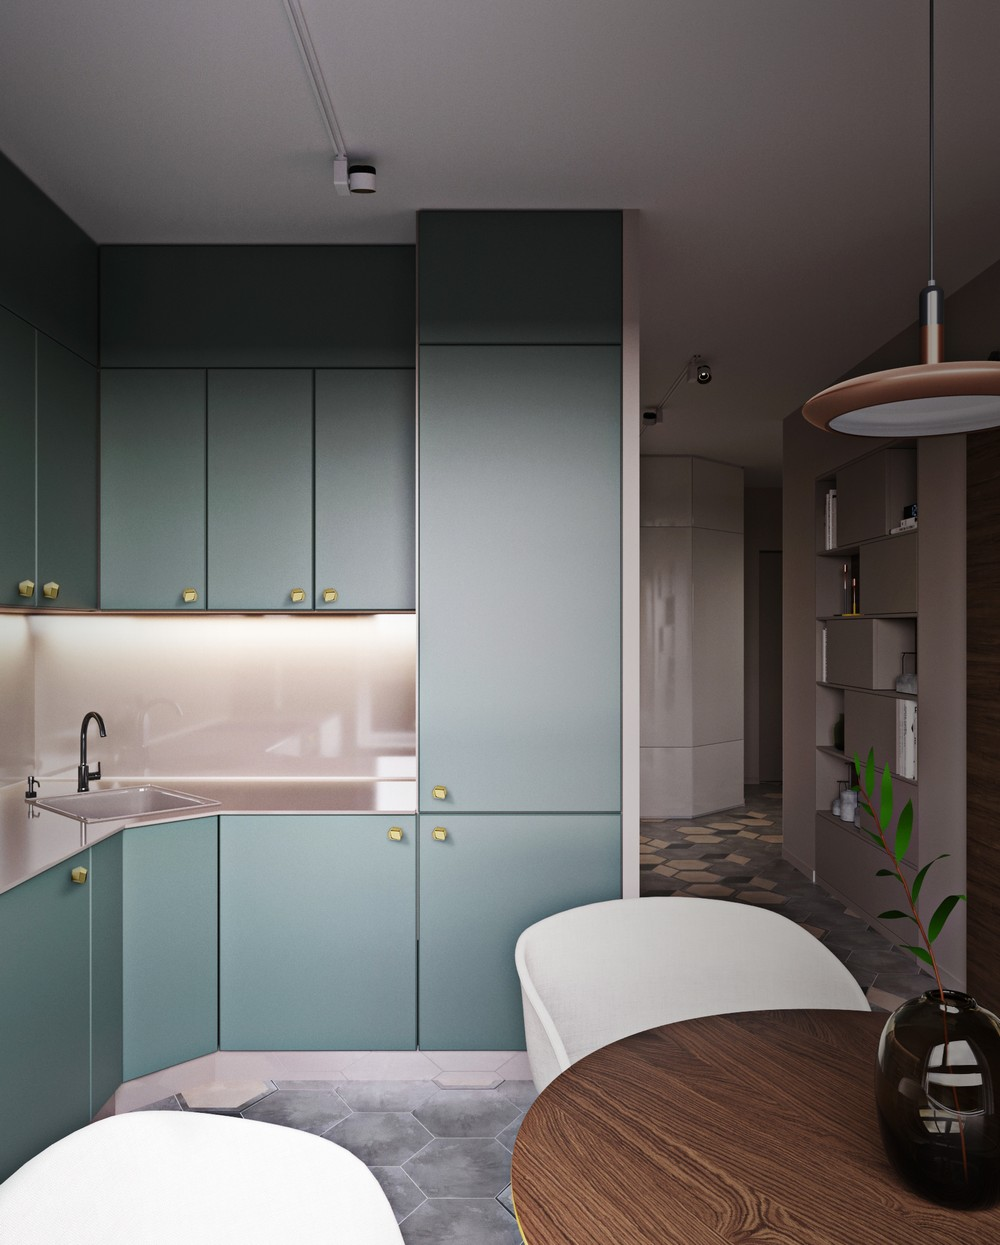 The Modern-Day Kitchen Is Essentially All About Accessorizing in Style! 2 modern-day kitchen The Modern-Day Kitchen Is Essentially All About Accessorizing in Style! The Modern Day Kitchen Is Essentially All About Accessorizing in Style 2